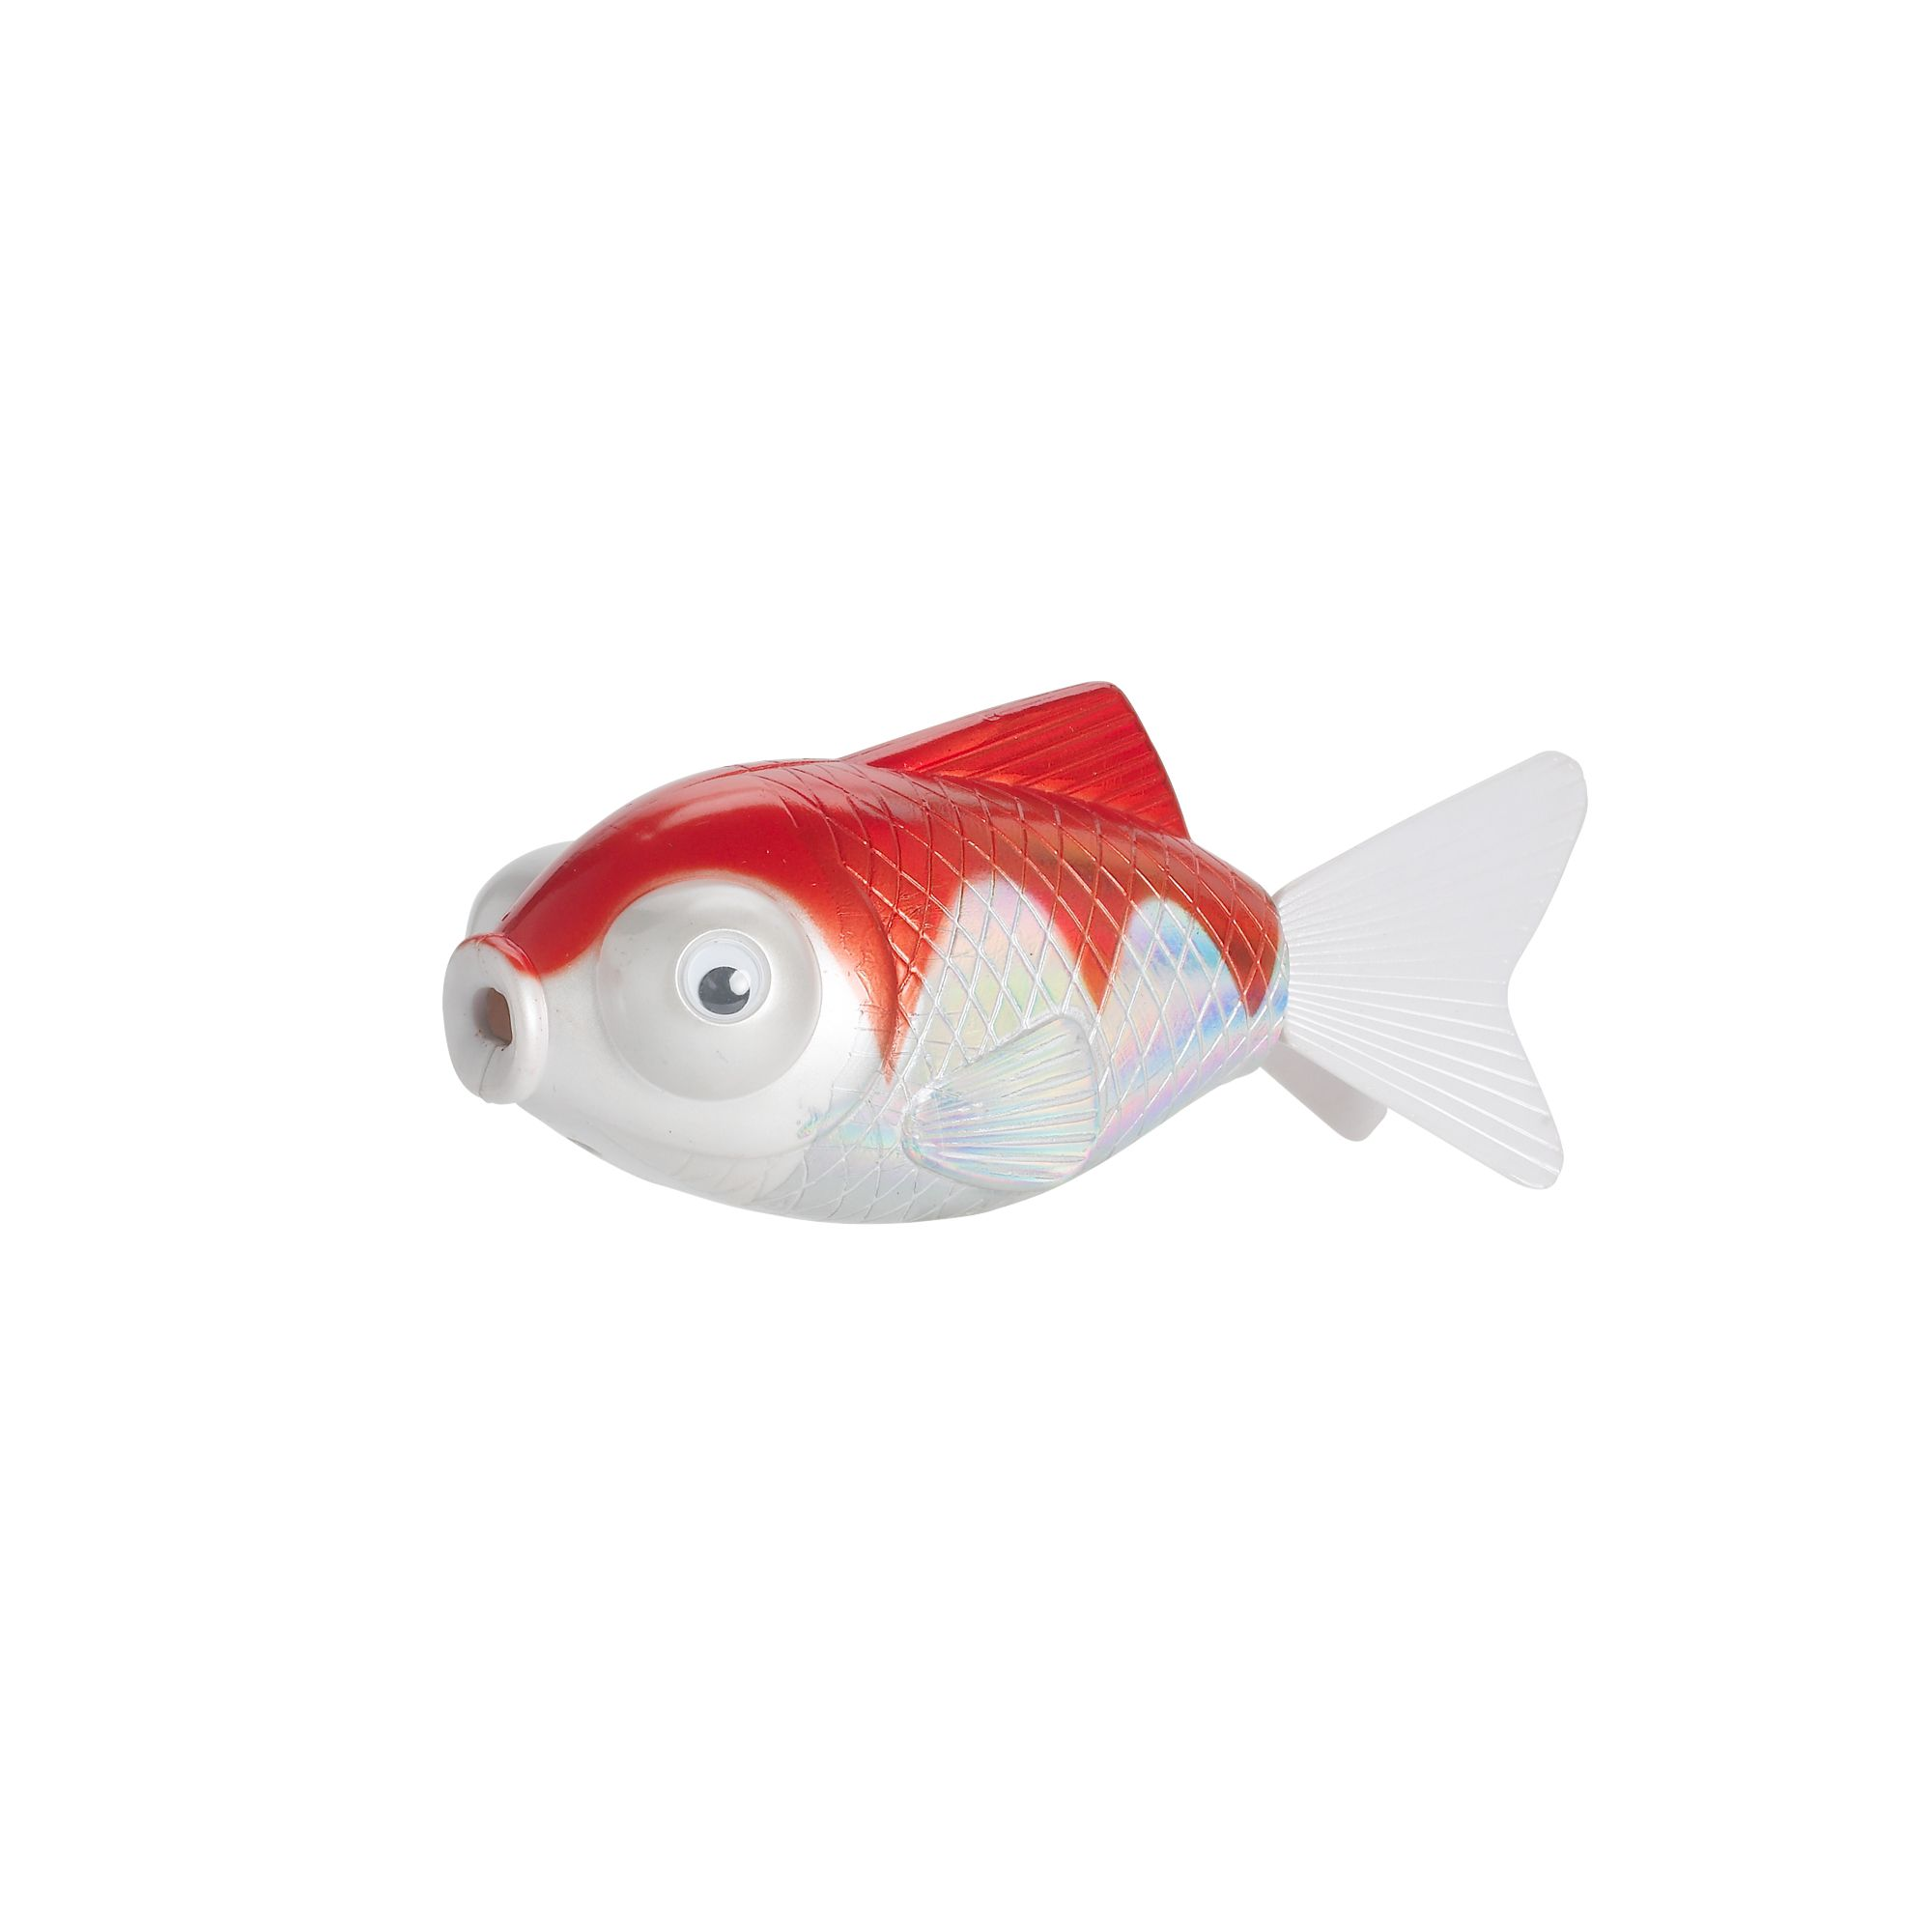 Hamleys fish